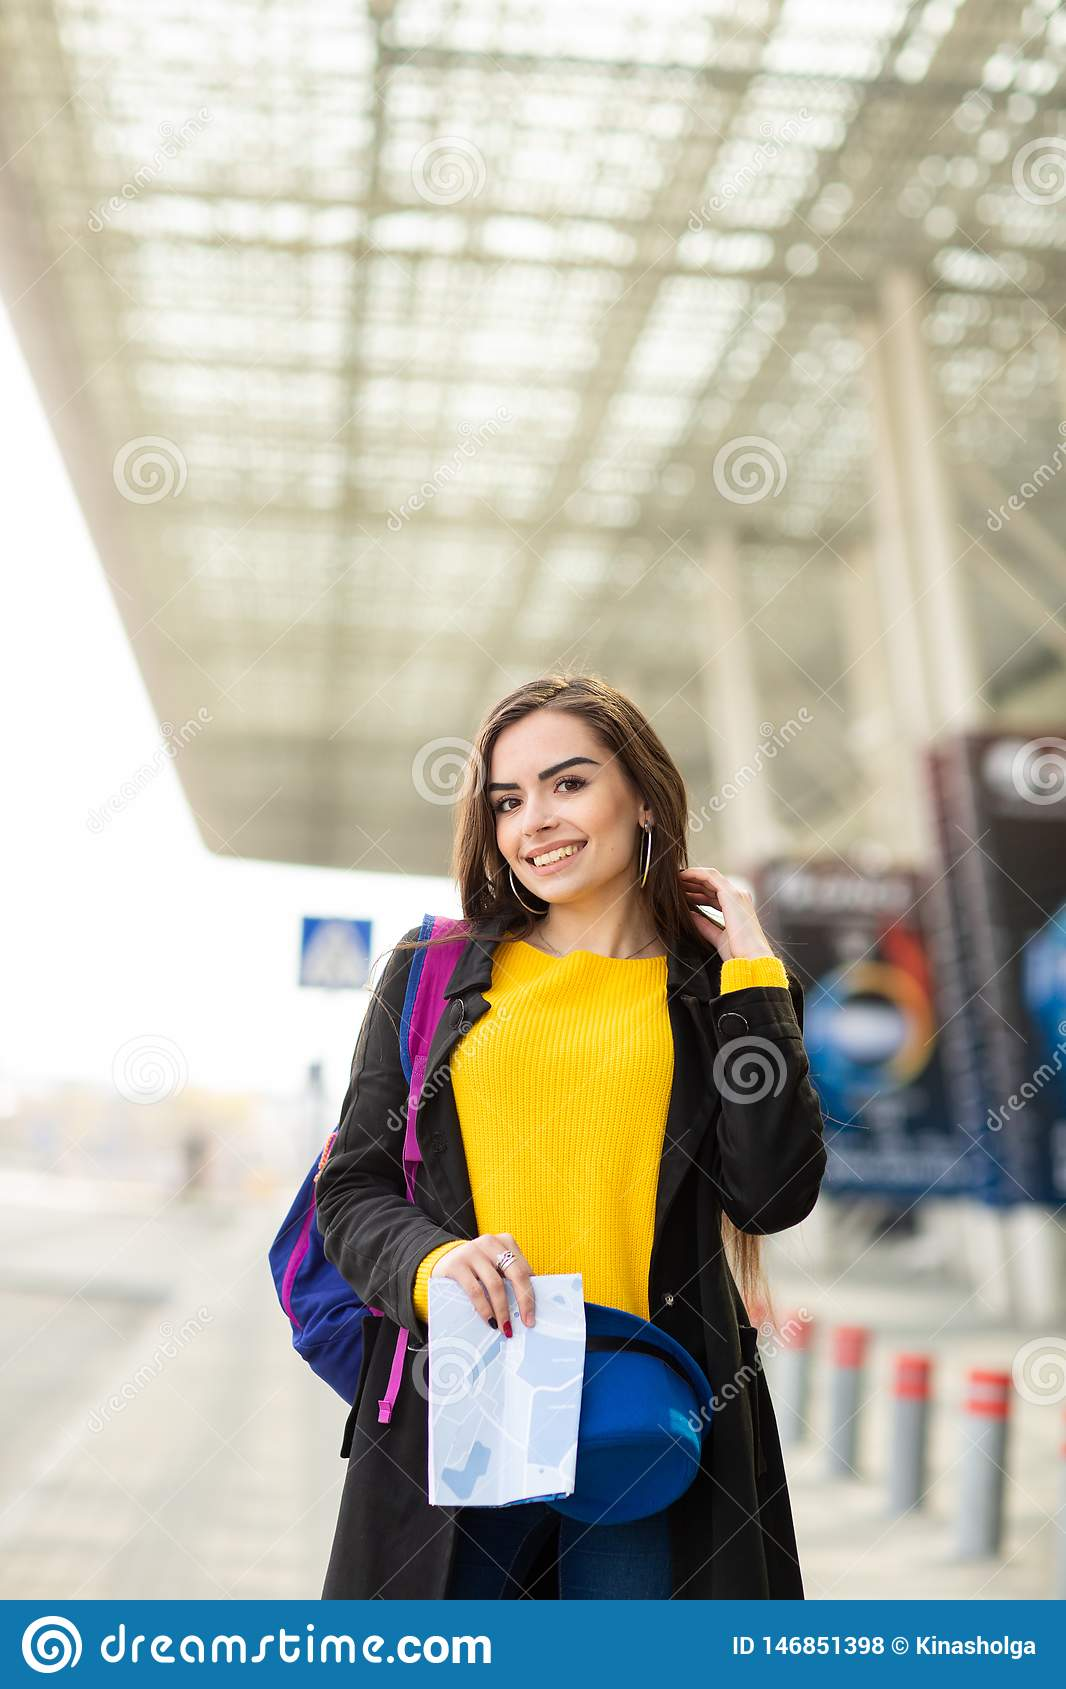 Beautiful young girl with a backpack behind her shoulder holding a map, in the street near the airport